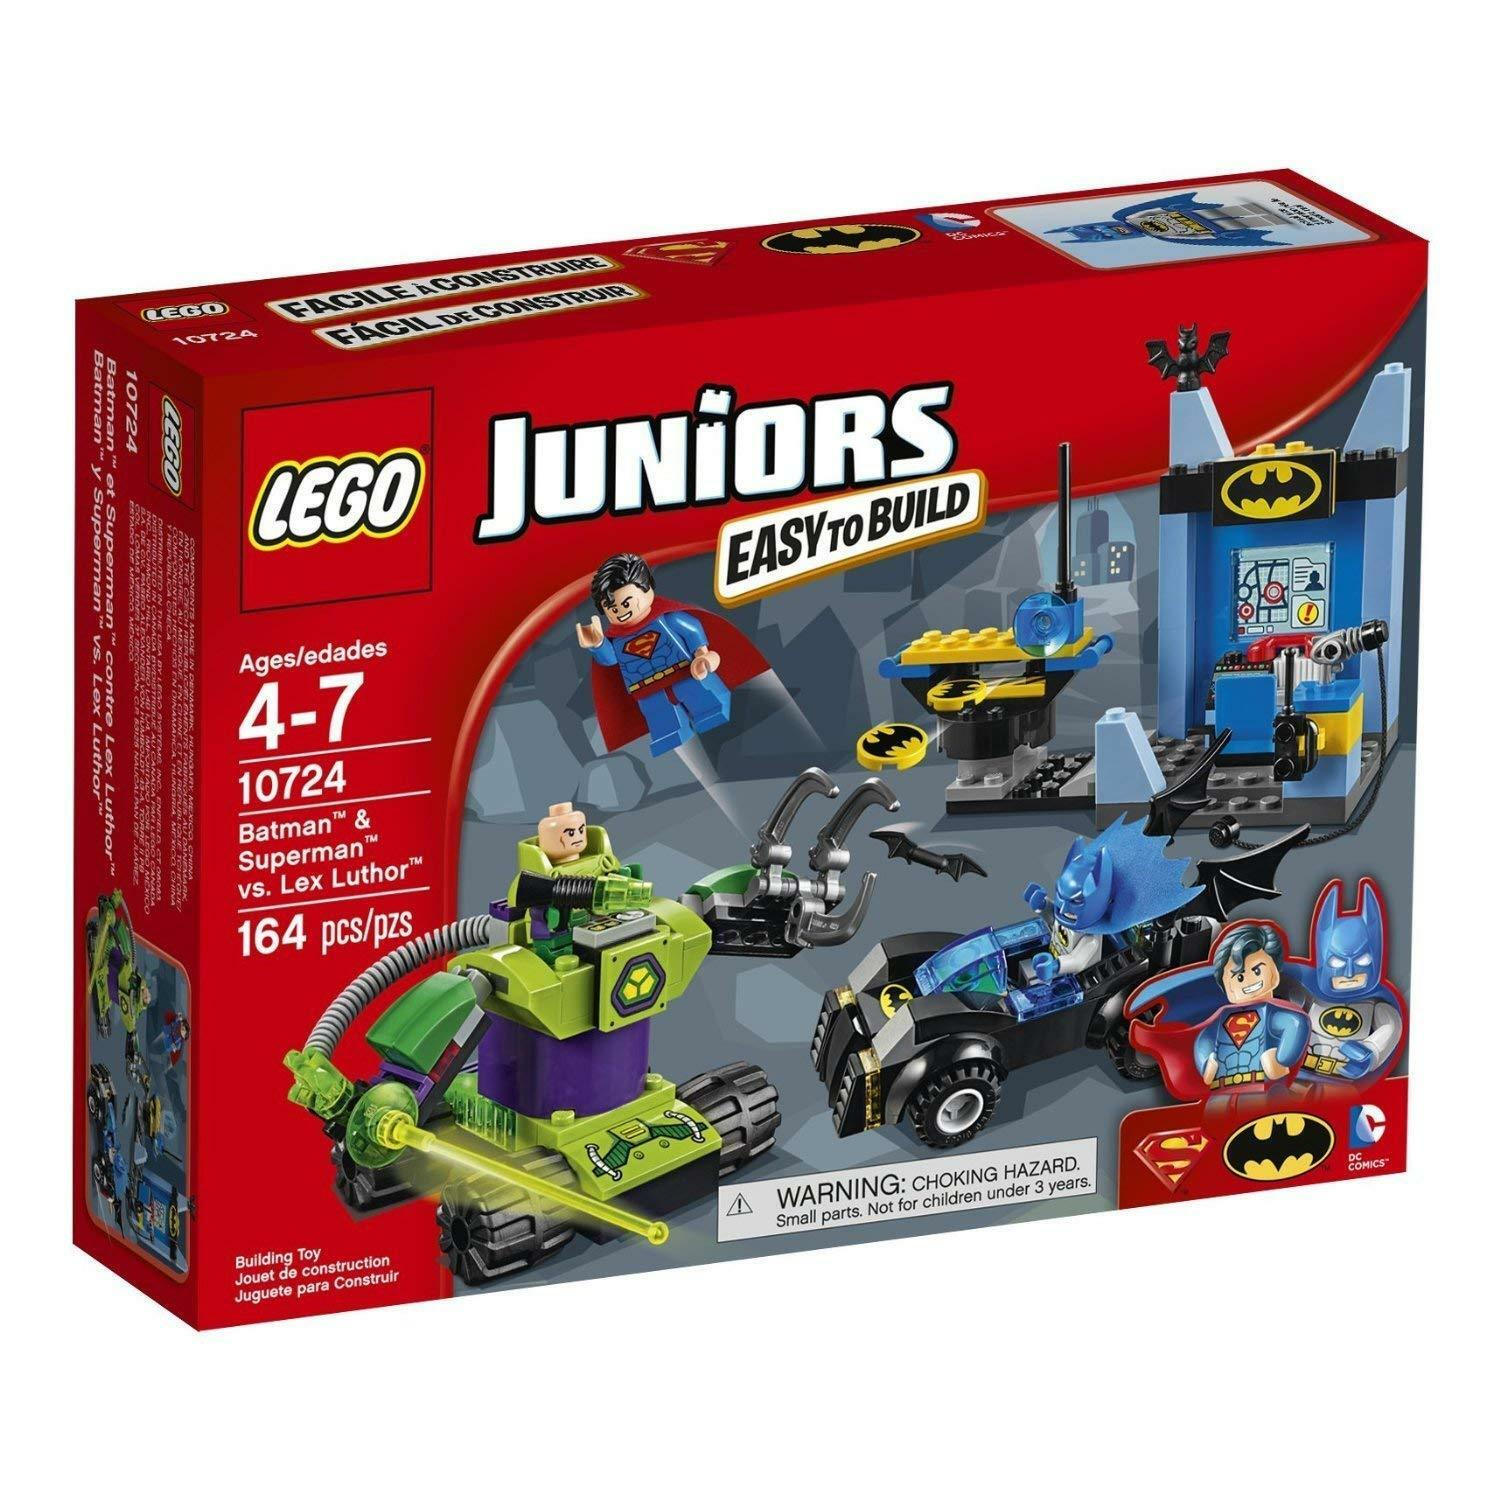 Lego Juniors DC Comics 10724 Batman & Superman vs. Lex Luthor NISB